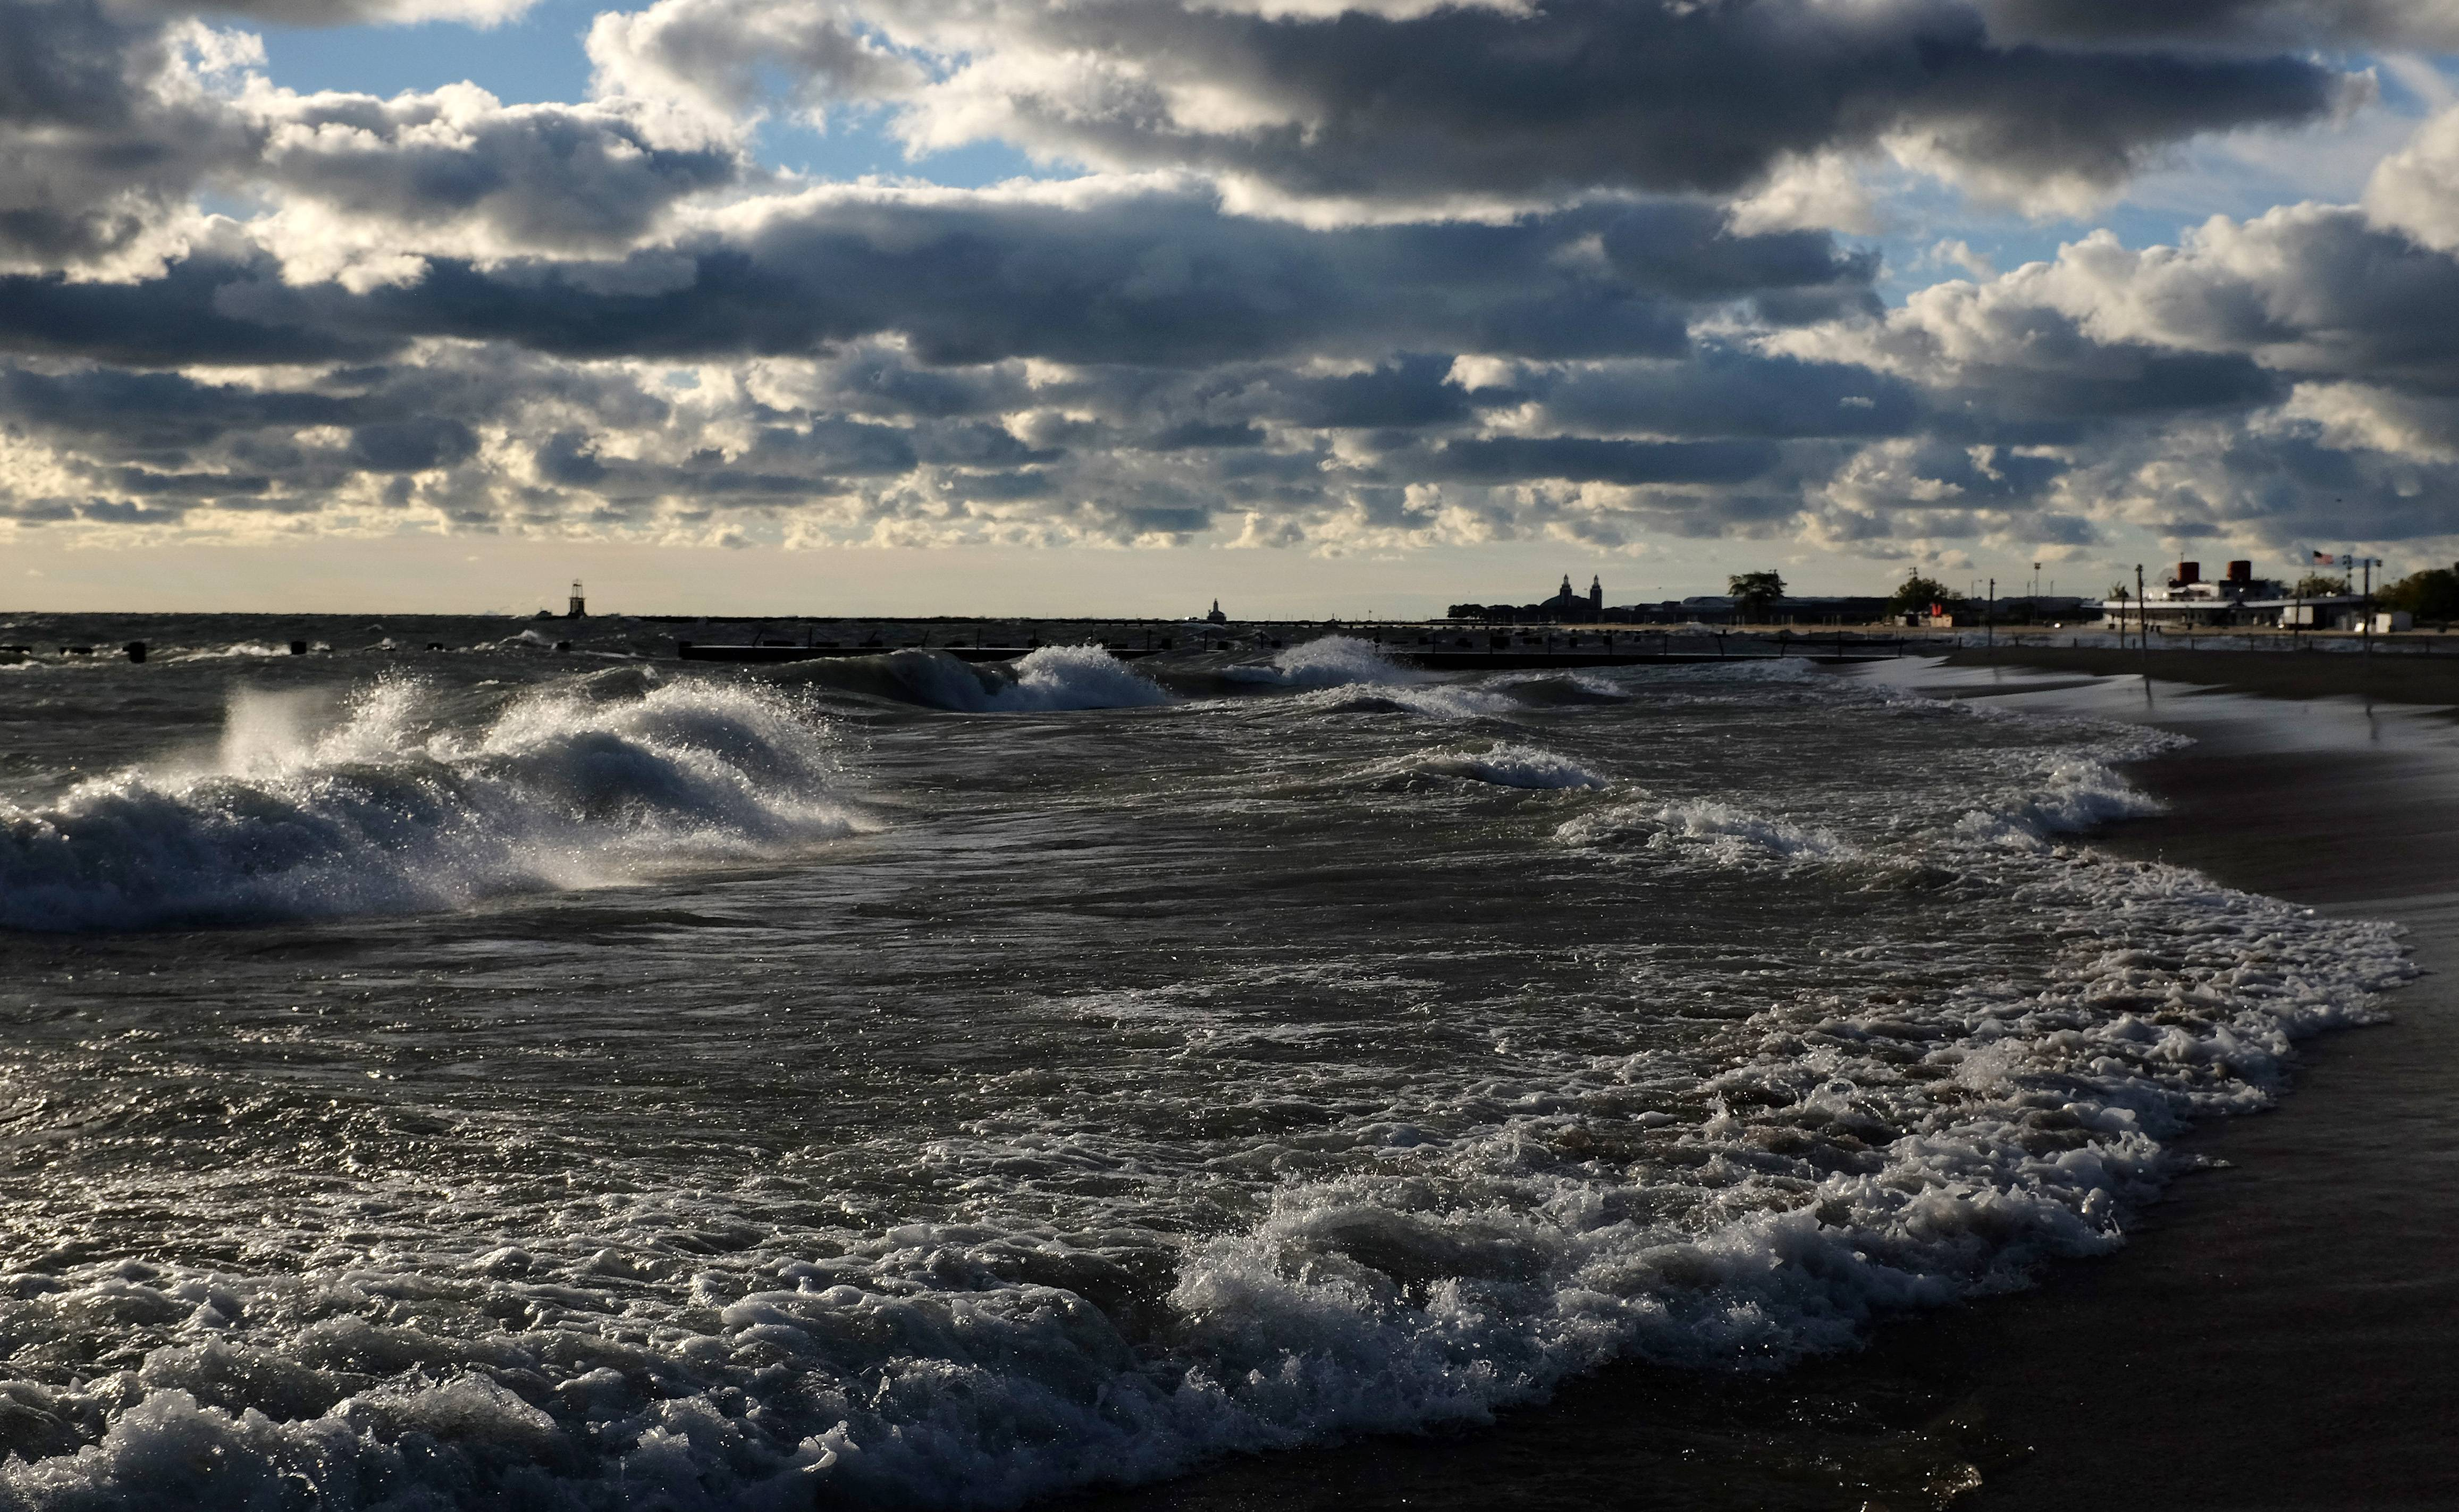 High winds may cause flooding today along the lakeshore, the National Weather Service warns.